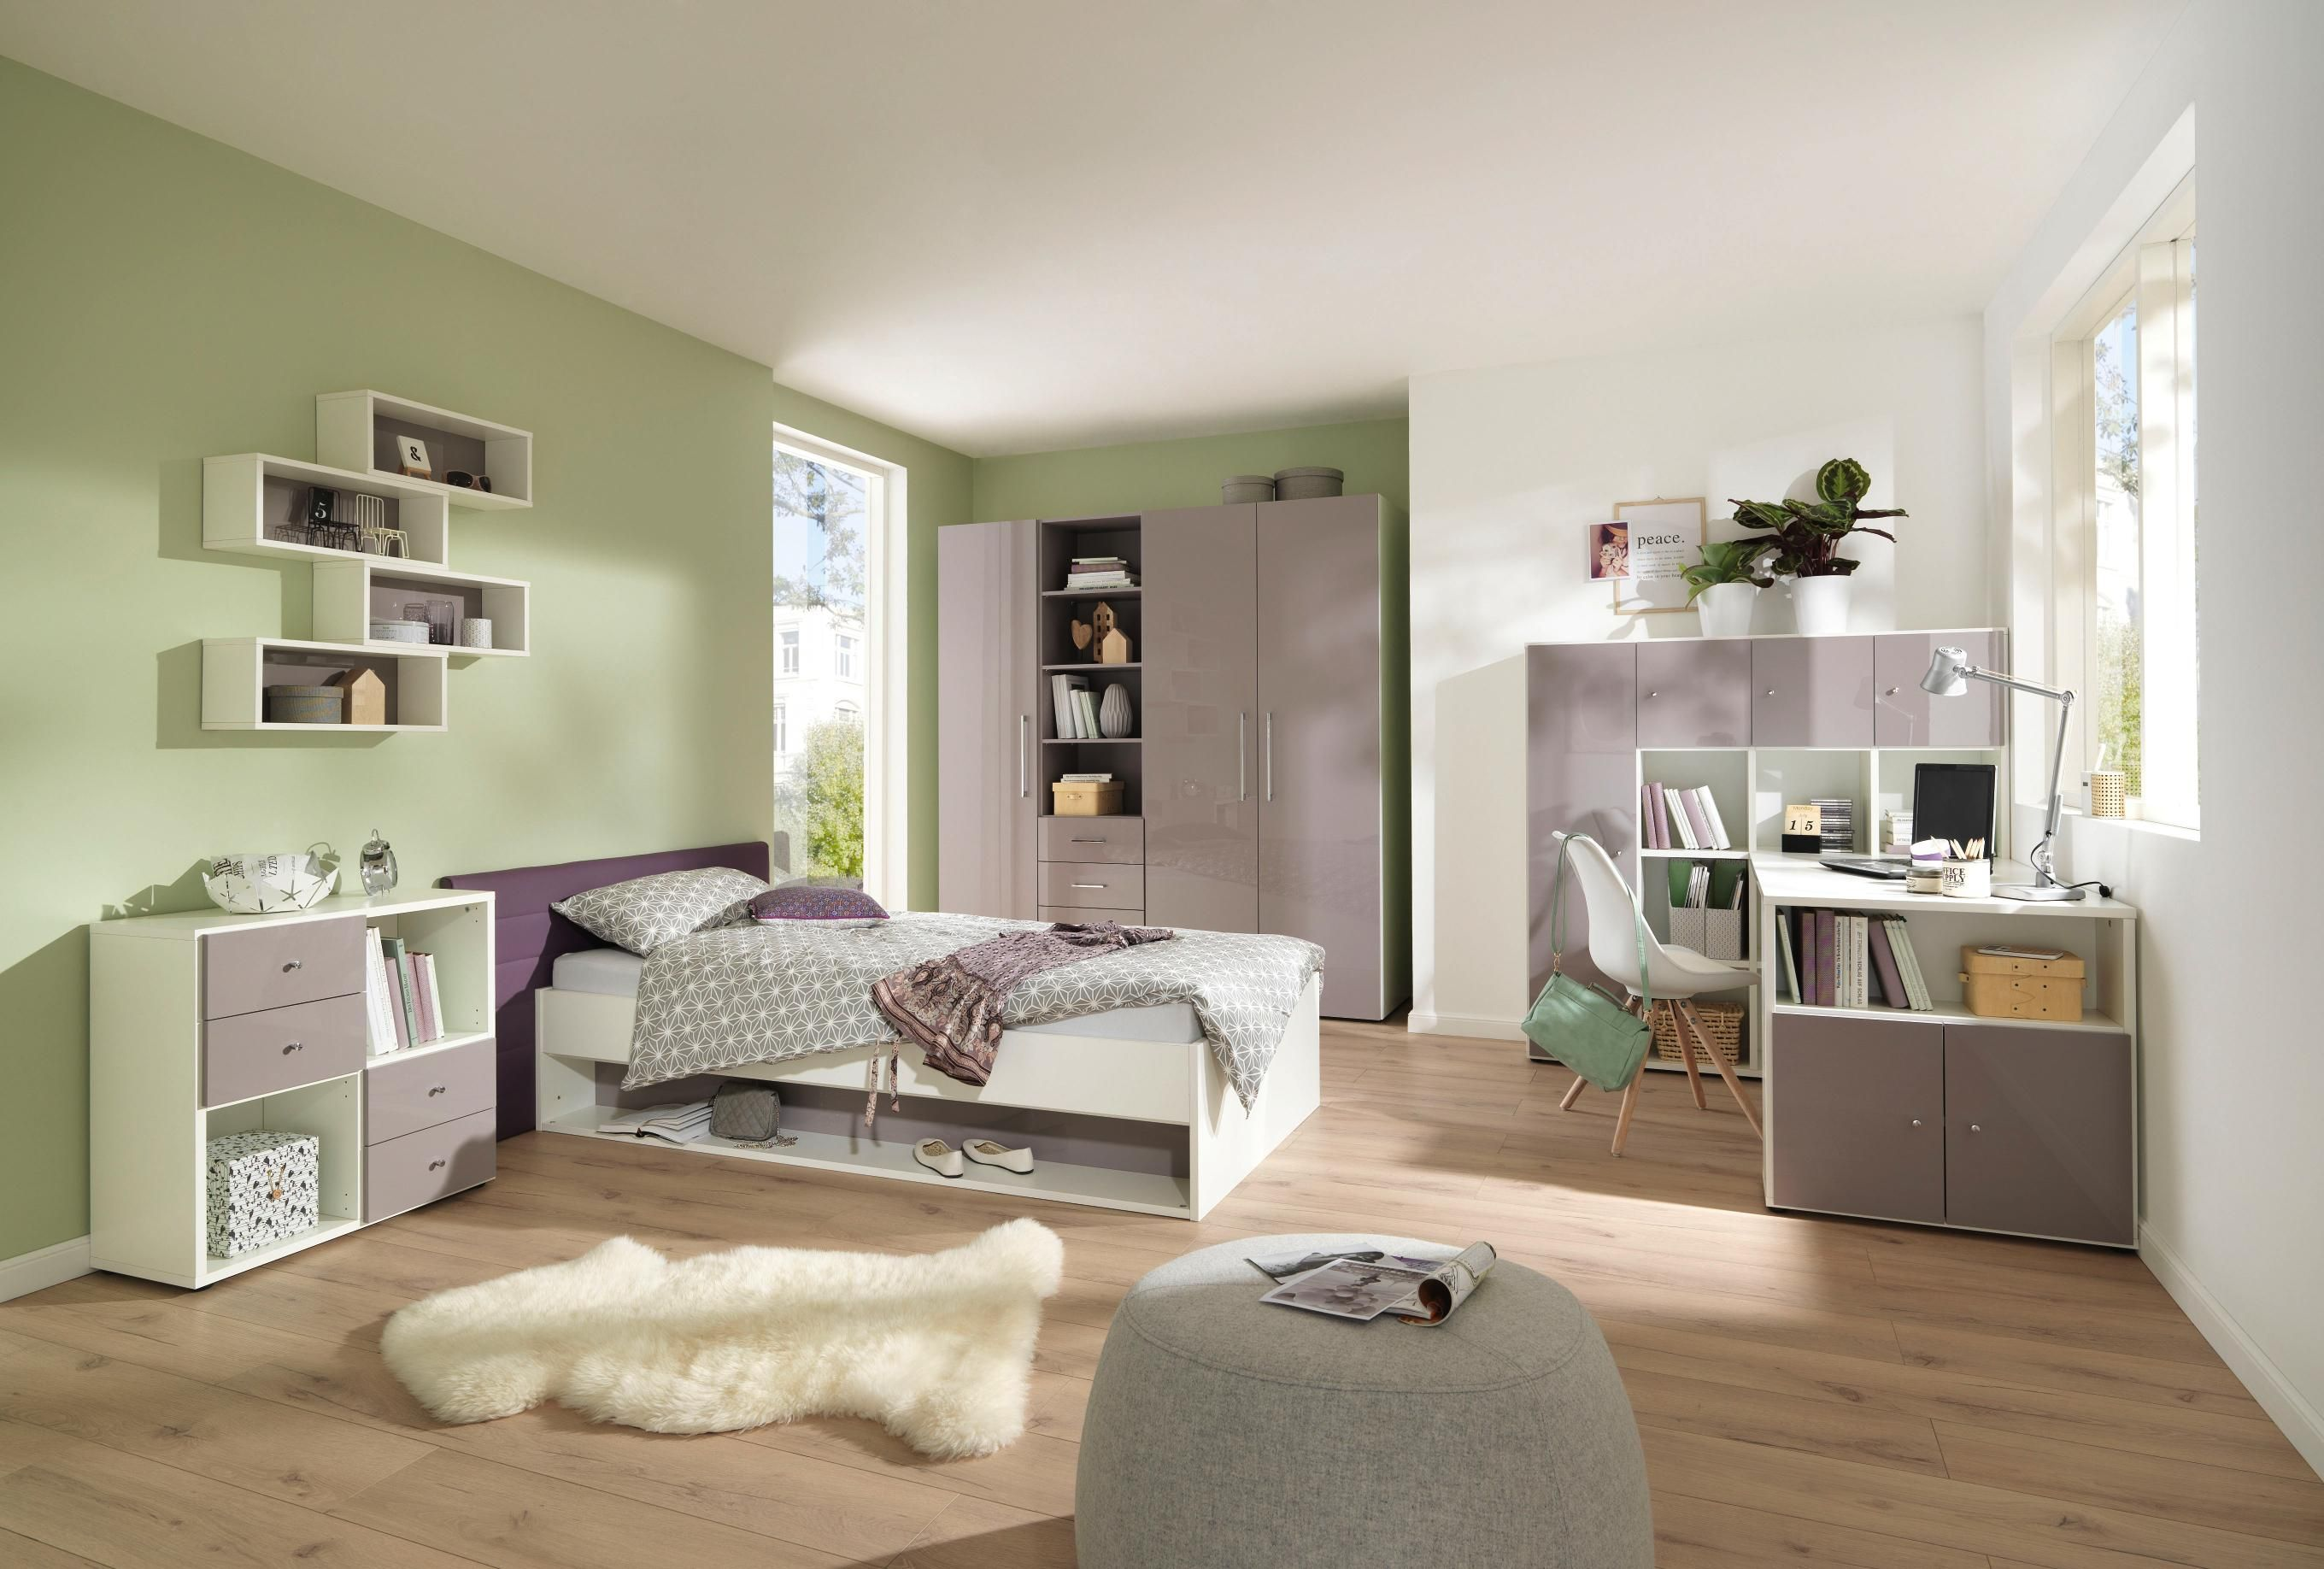 jugendzimmer welnova kinder und jugendzimmer. Black Bedroom Furniture Sets. Home Design Ideas